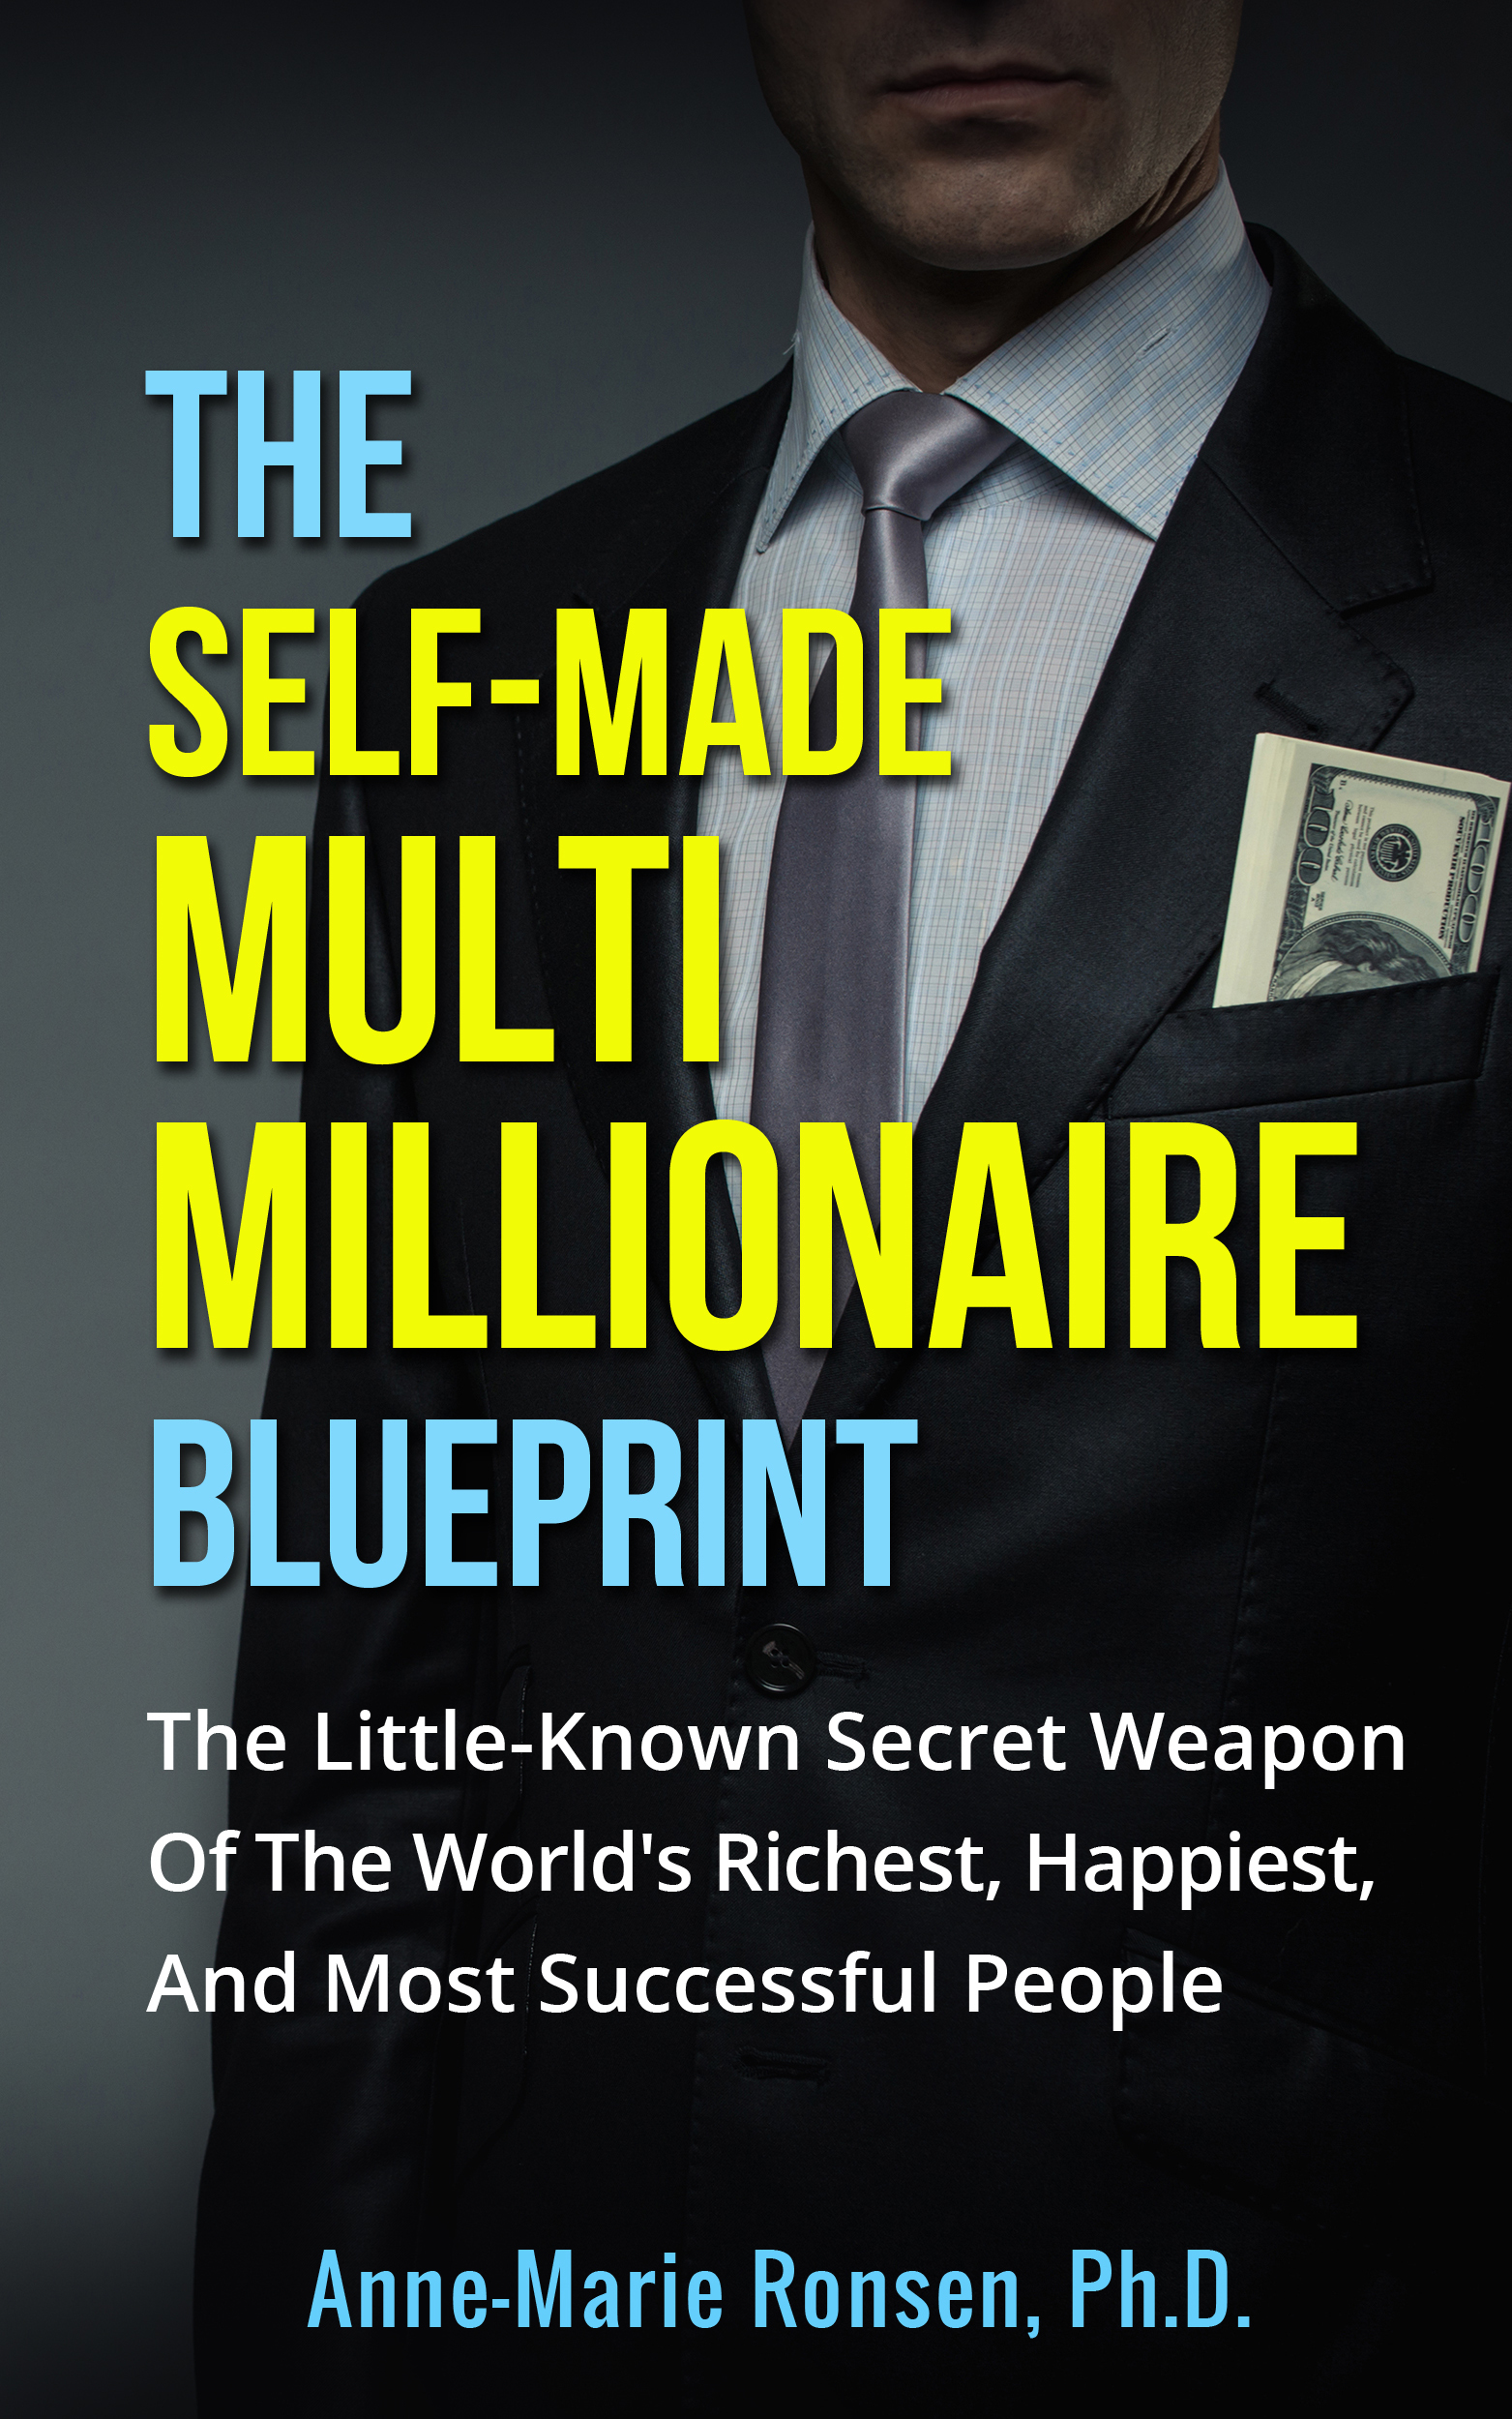 The Self-Made Multi Millionaire Blueprint: The Little-Known Secret Weapon Of The World's Richest, Happiest, And Most Successful People